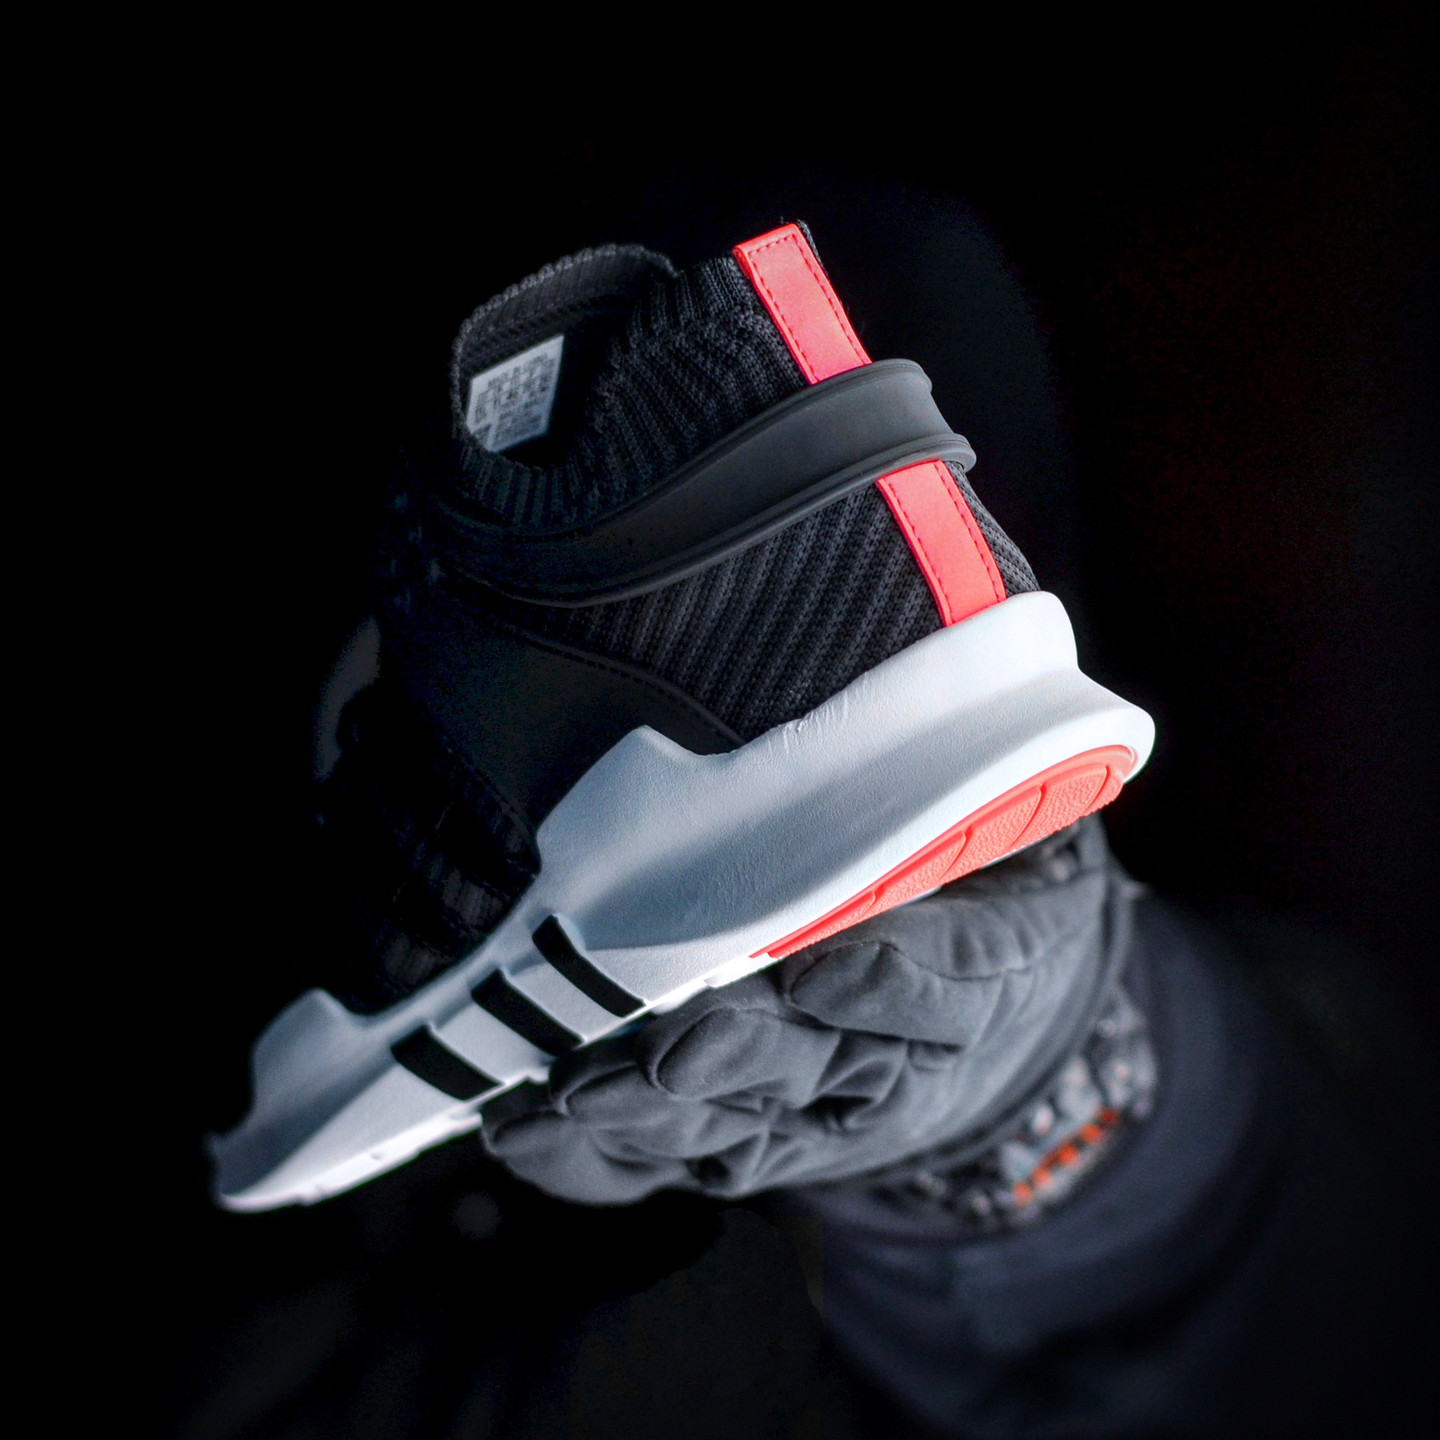 Adidas EQT Support ADV PK Core Black / Turbo Red BB1260